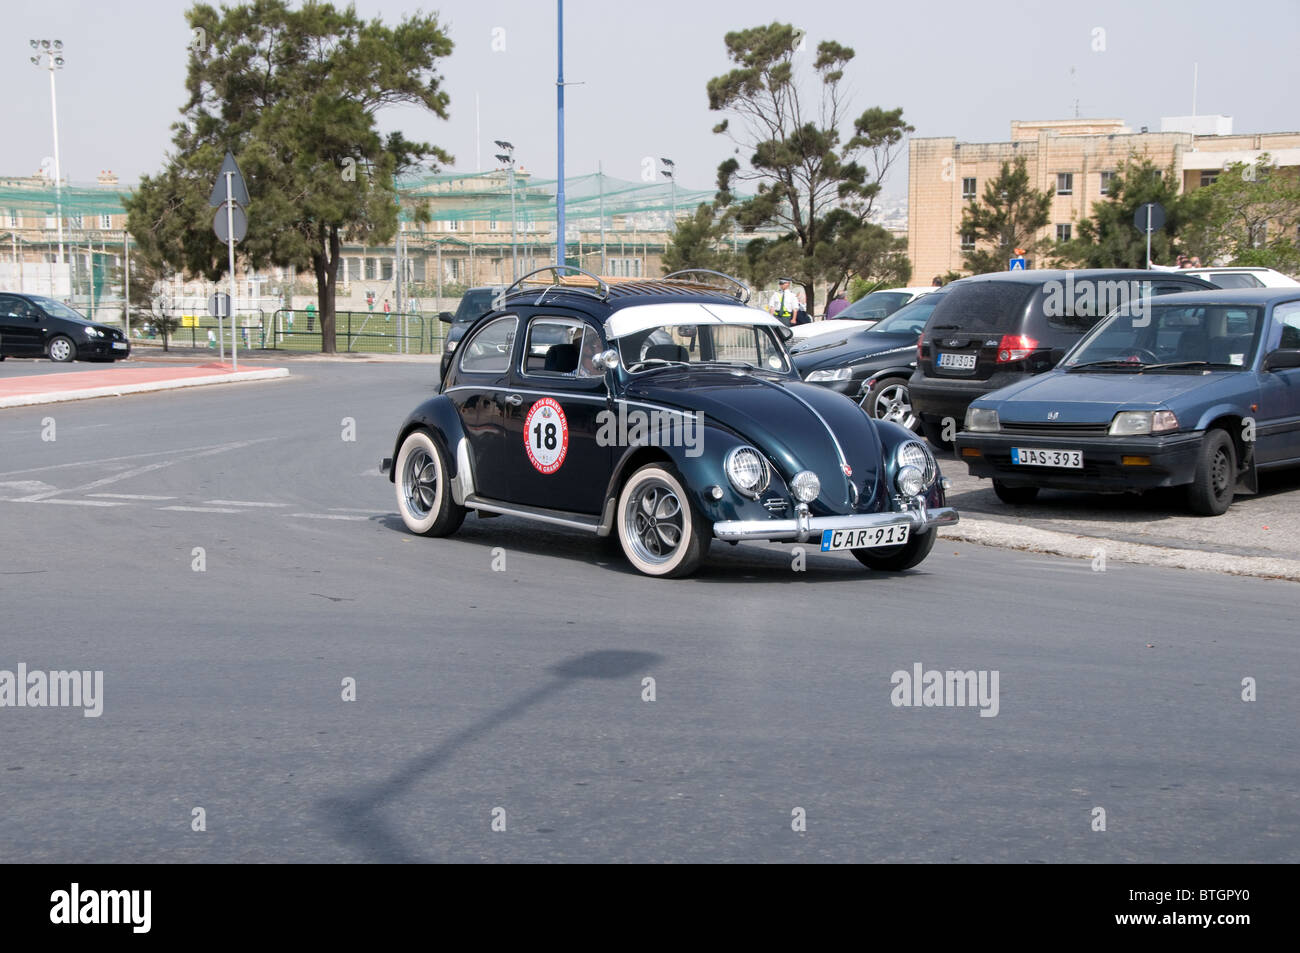 A Volkswagen Beetle takes part in the practice session for the Valletta Grand Prix for classic cars. Stock Photo